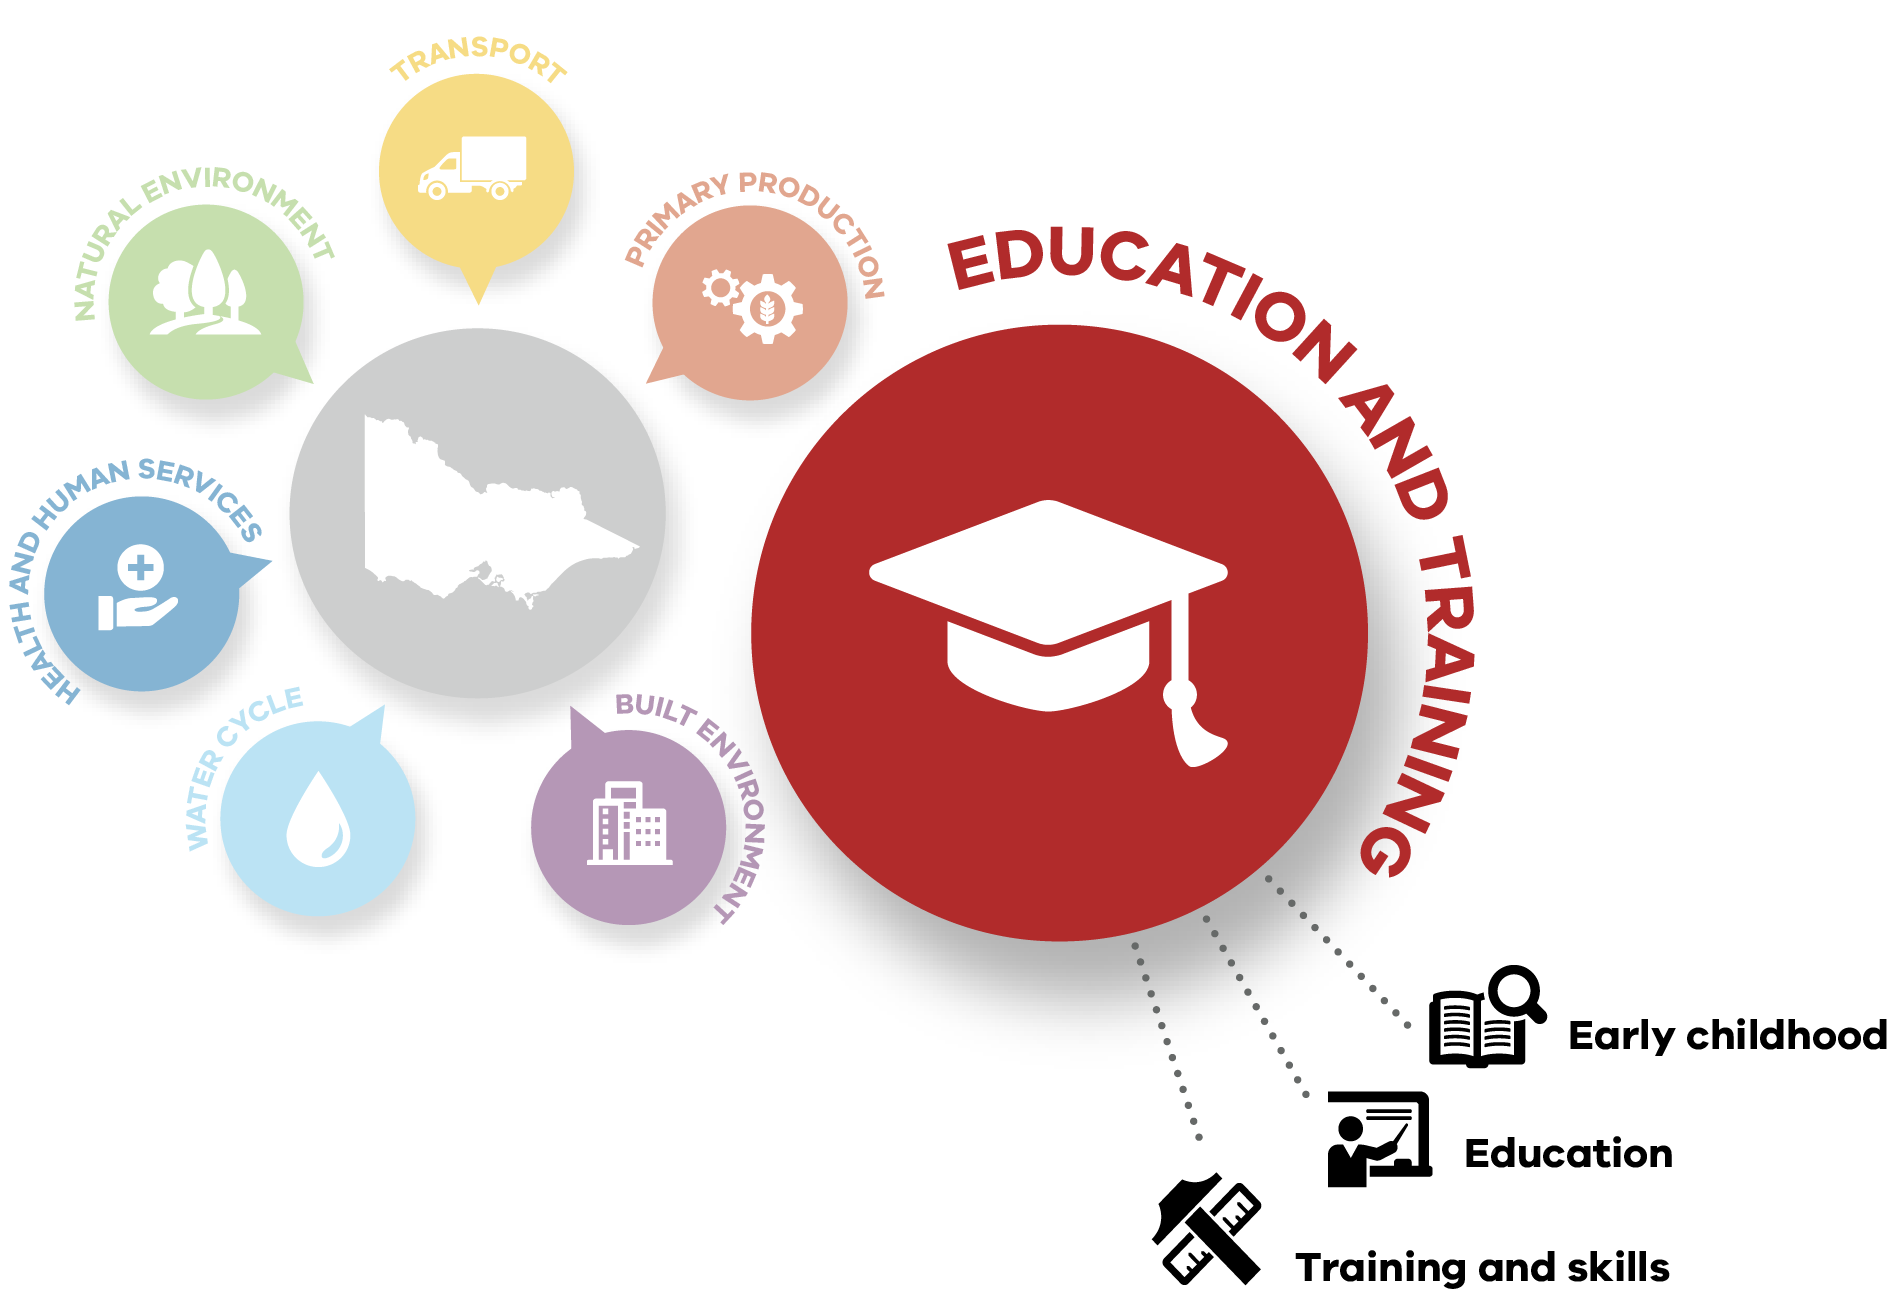 The Education and Training system includes early childhood, education, and training and skills. It is one of seven systems creating Climate Change Adaptation Action Plans.